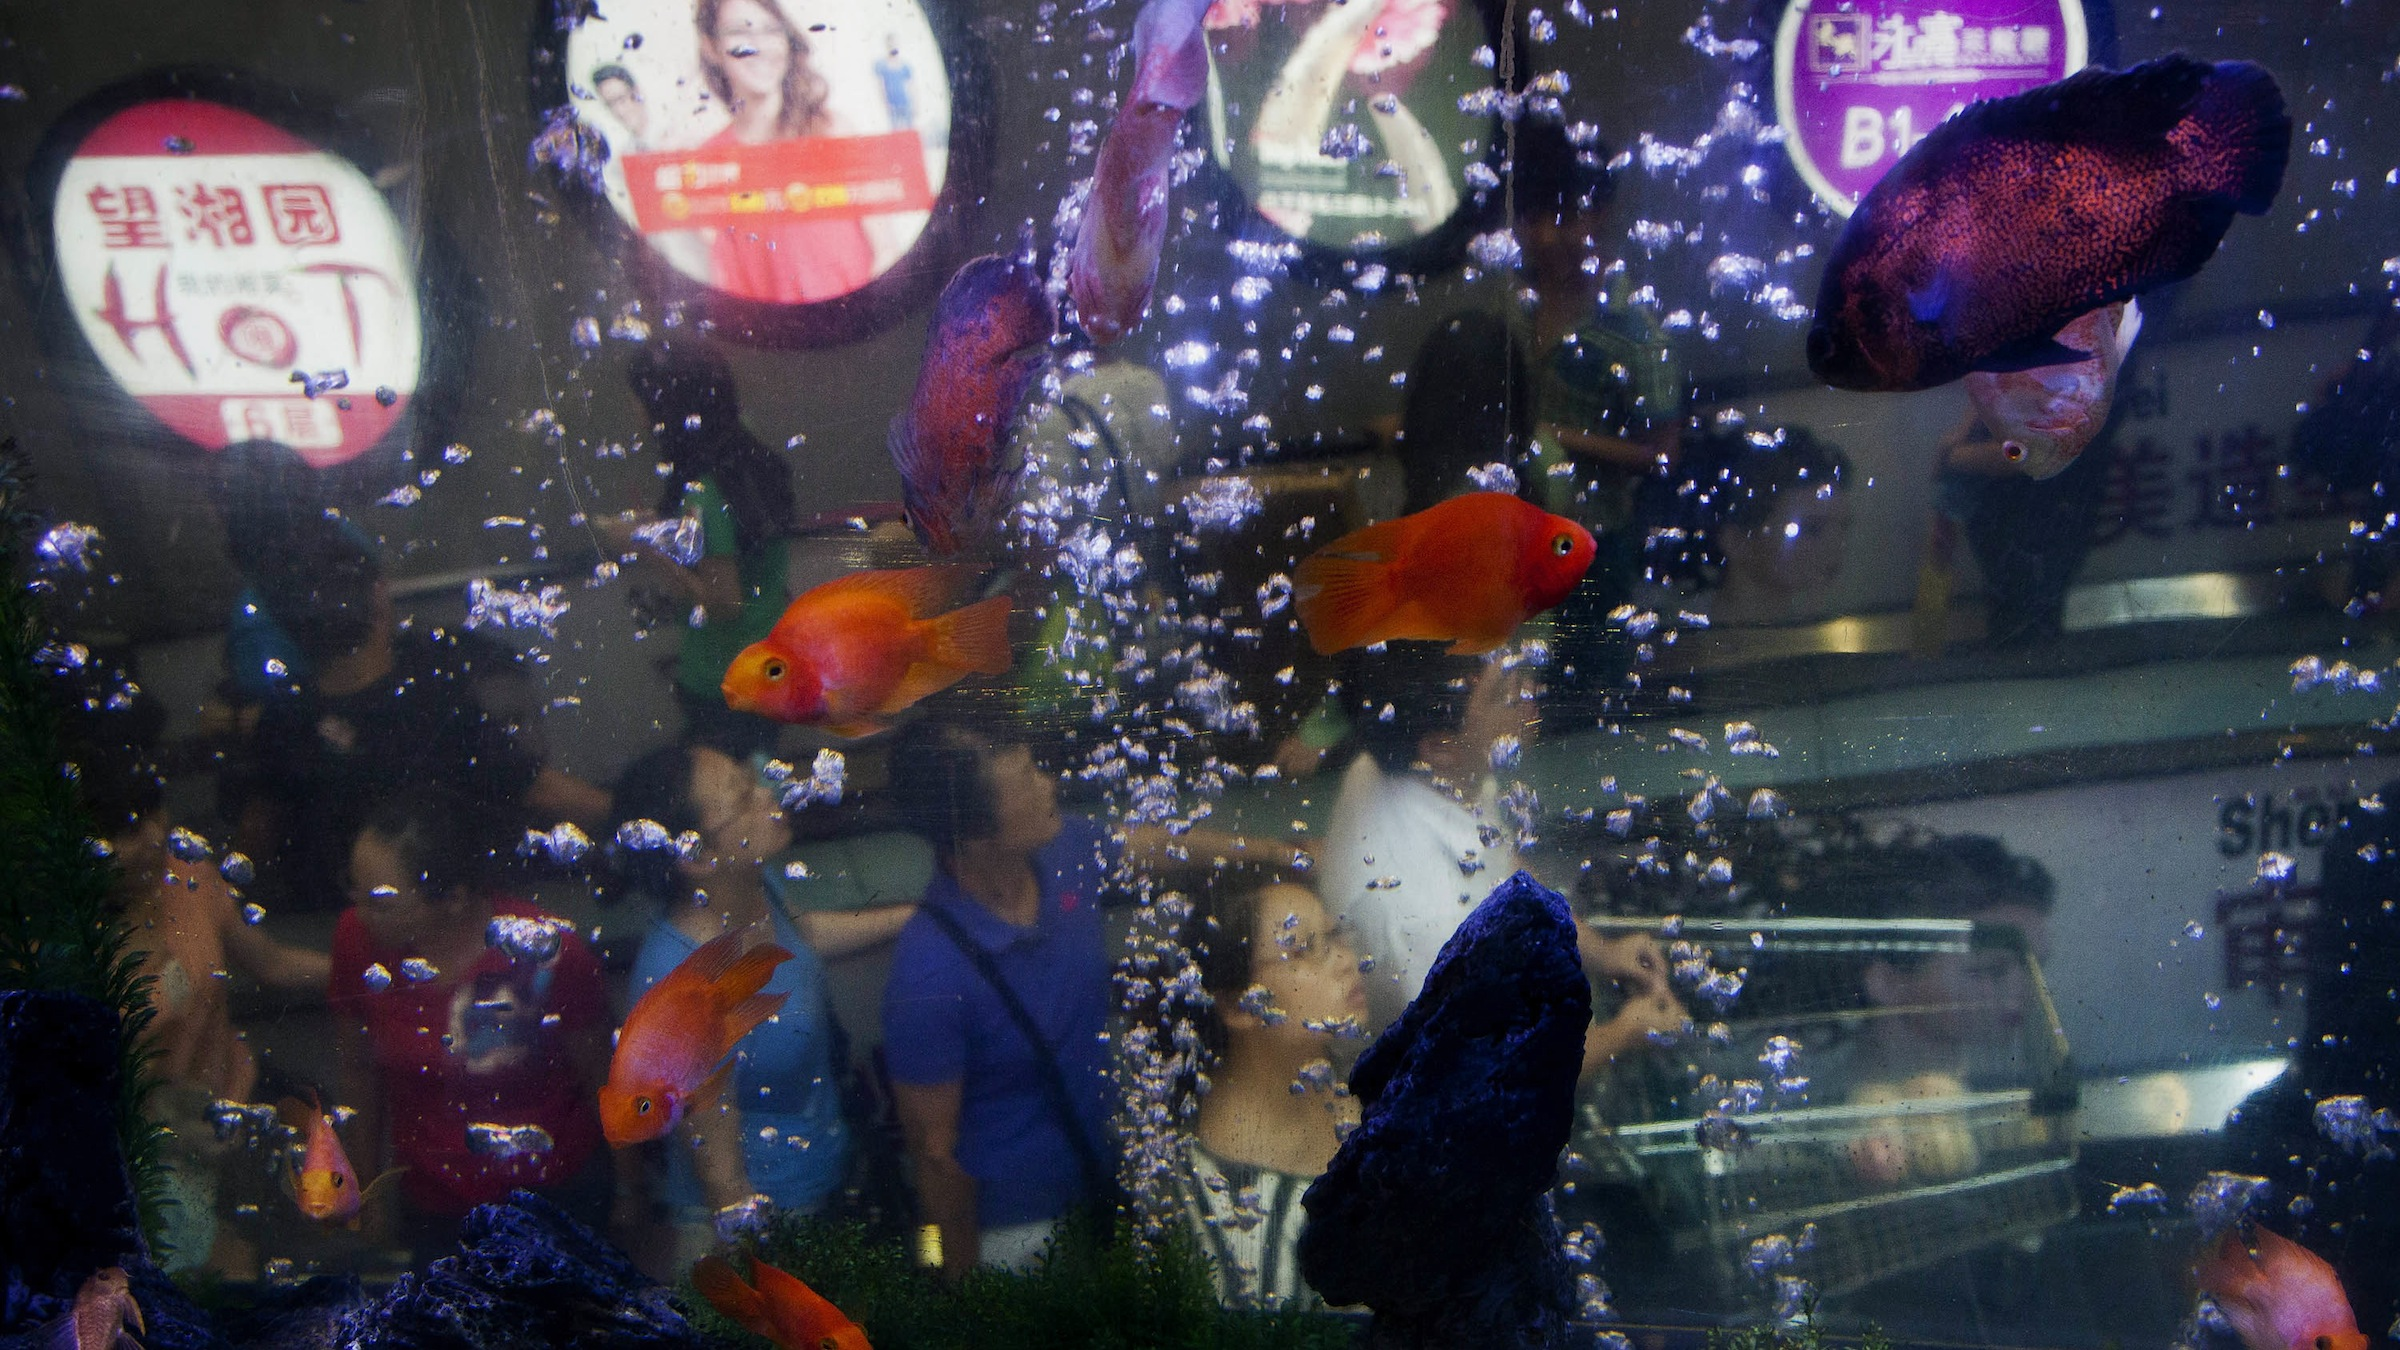 Chinese shoppers on an escalator passing by an aquarium installed inside a shopping mall to attract visitor in Beijing Thursday, Aug. 23, 2012. (AP Photo/Andy Wong)